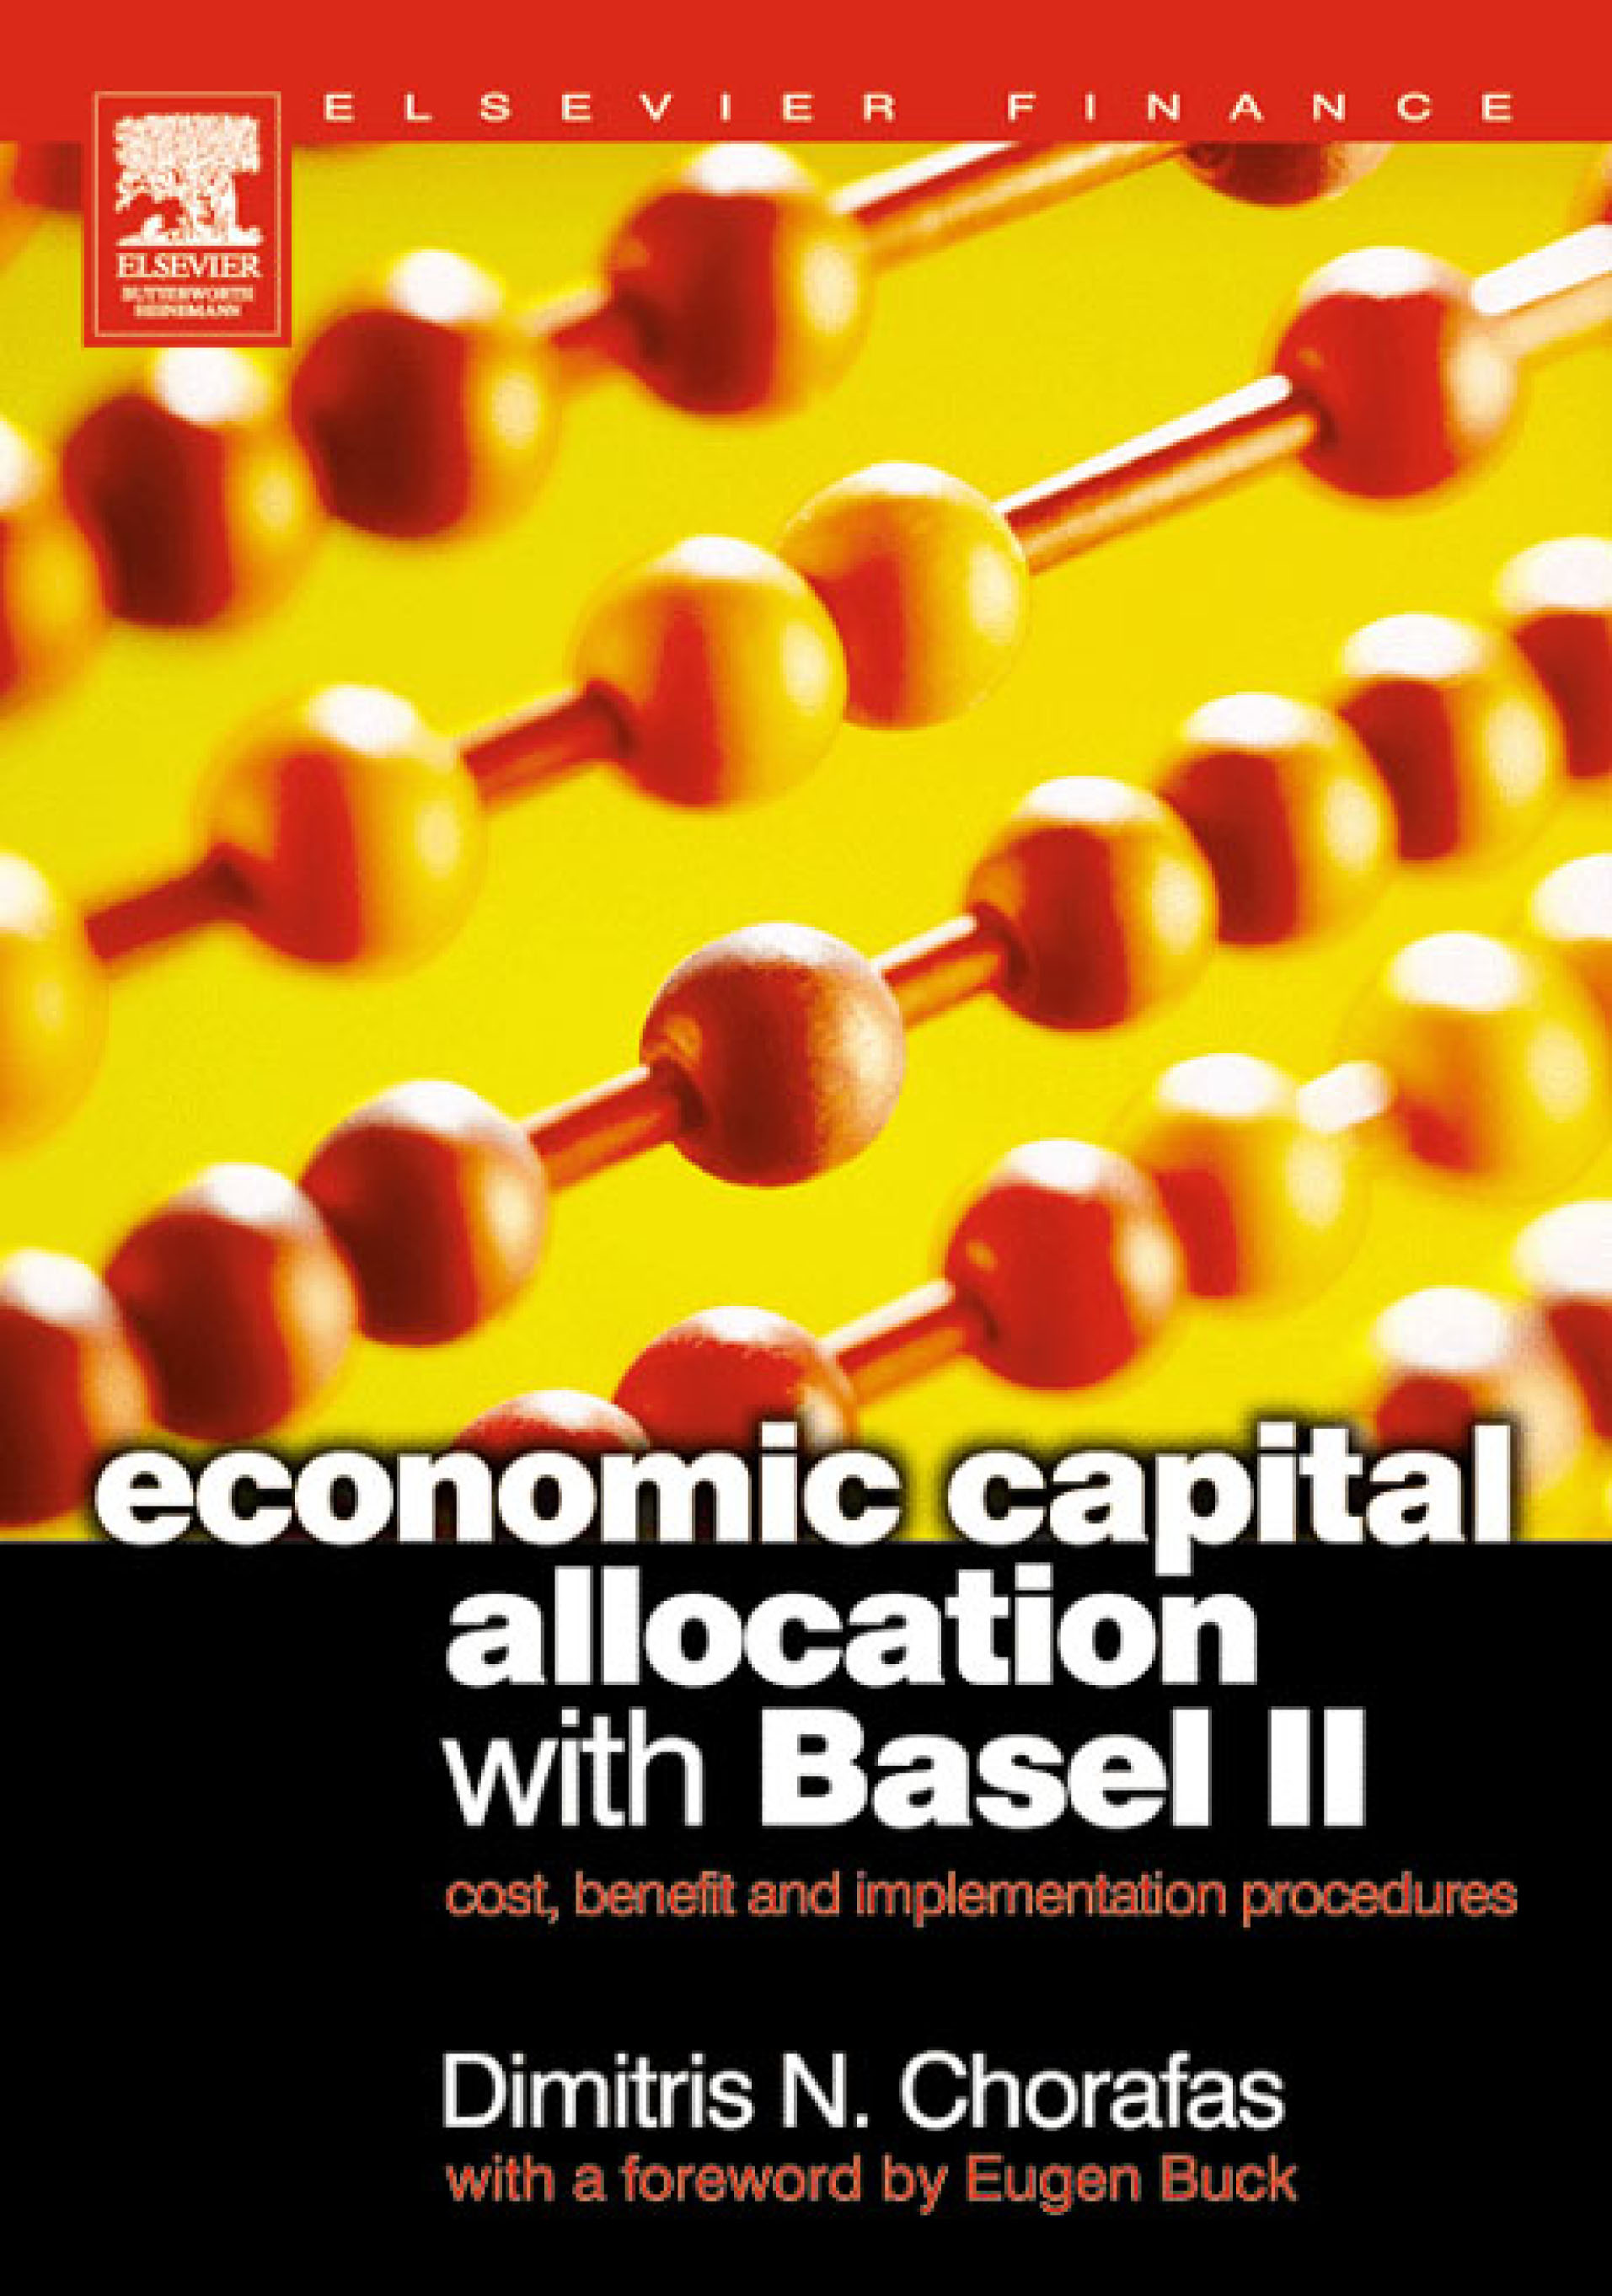 Download Ebook Economic Capital Allocation with Basel II by Dimitris N. Chorafas Pdf